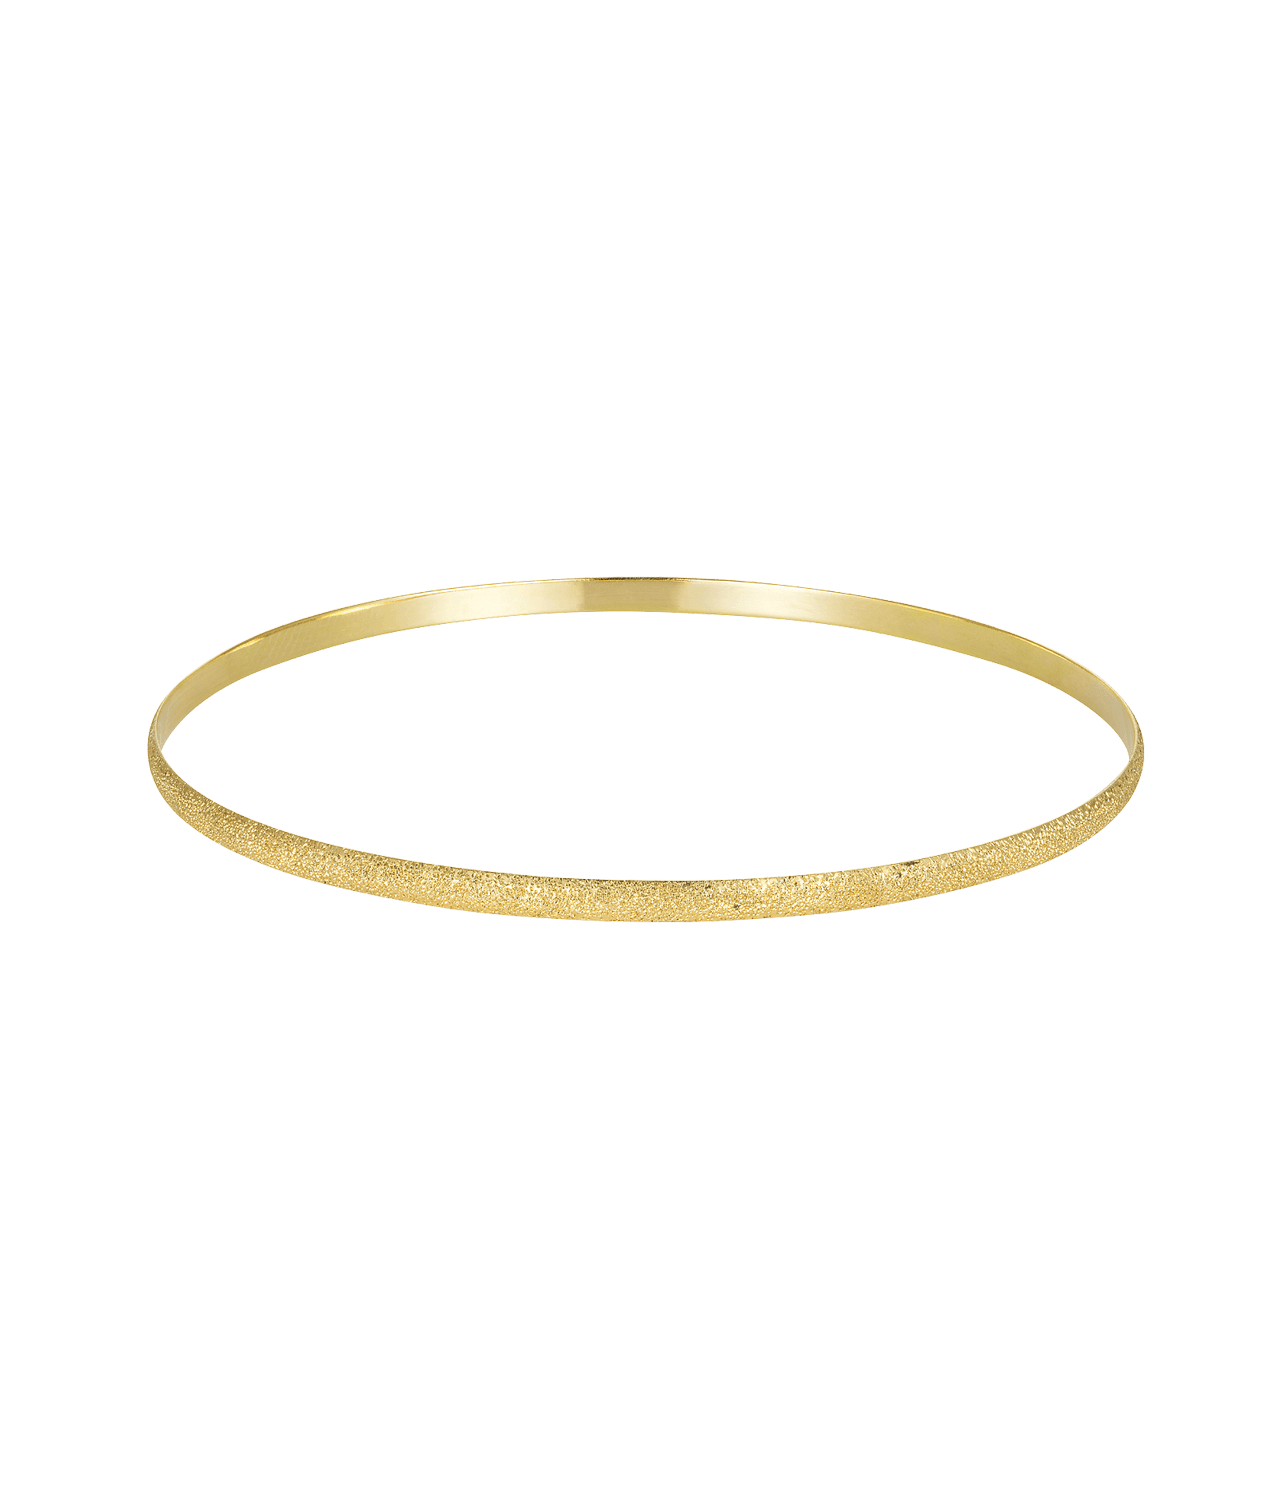 Carolina Bucci Florentine Finish Flat Bangle Yellow Gold